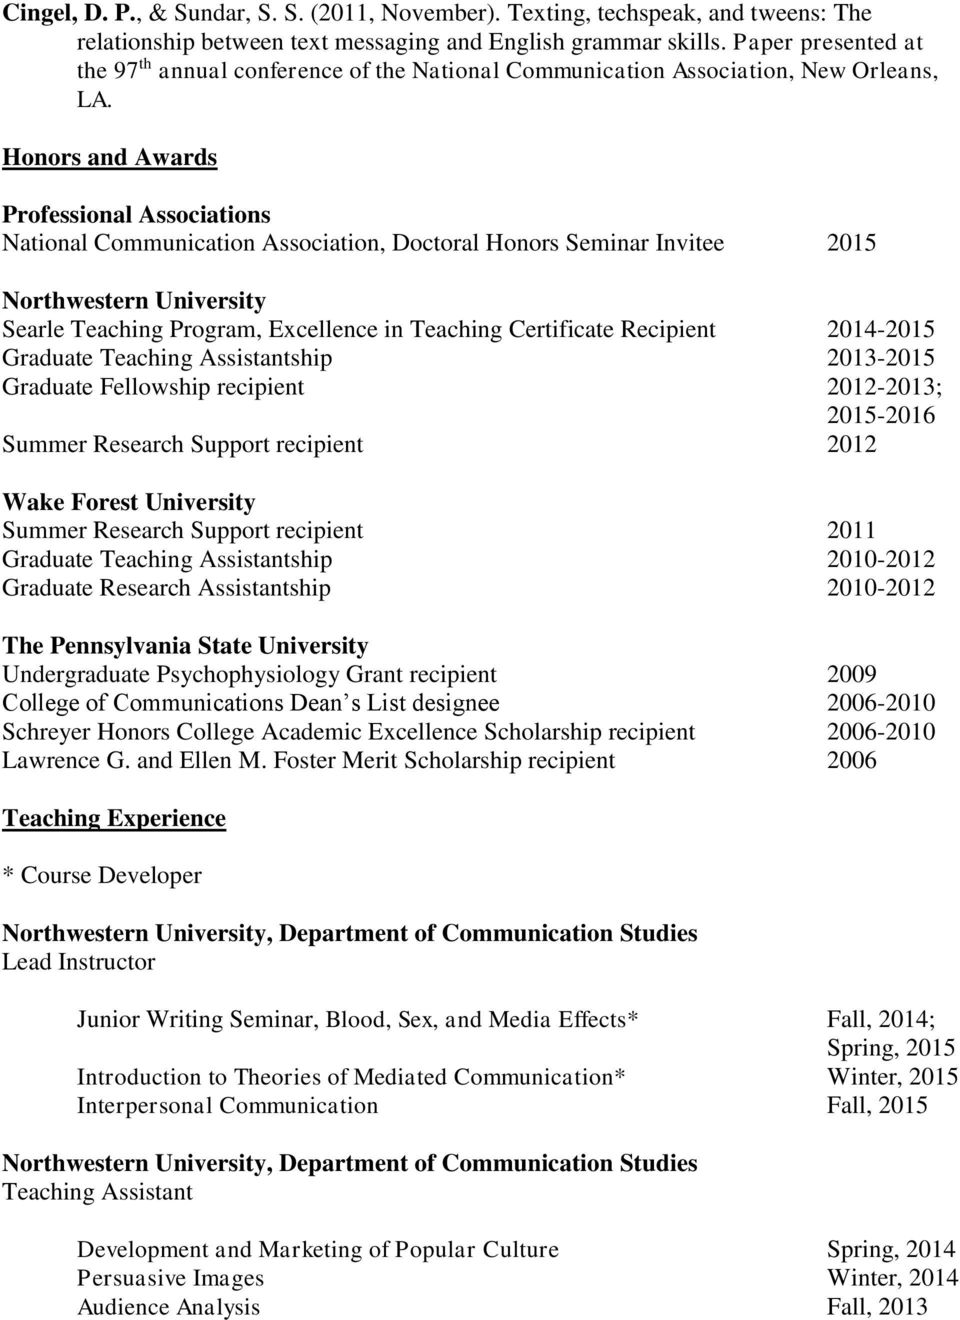 Honors and Awards Professional Associations National Communication Association, Doctoral Honors Seminar Invitee 2015 Northwestern University Searle Teaching Program, Excellence in Teaching